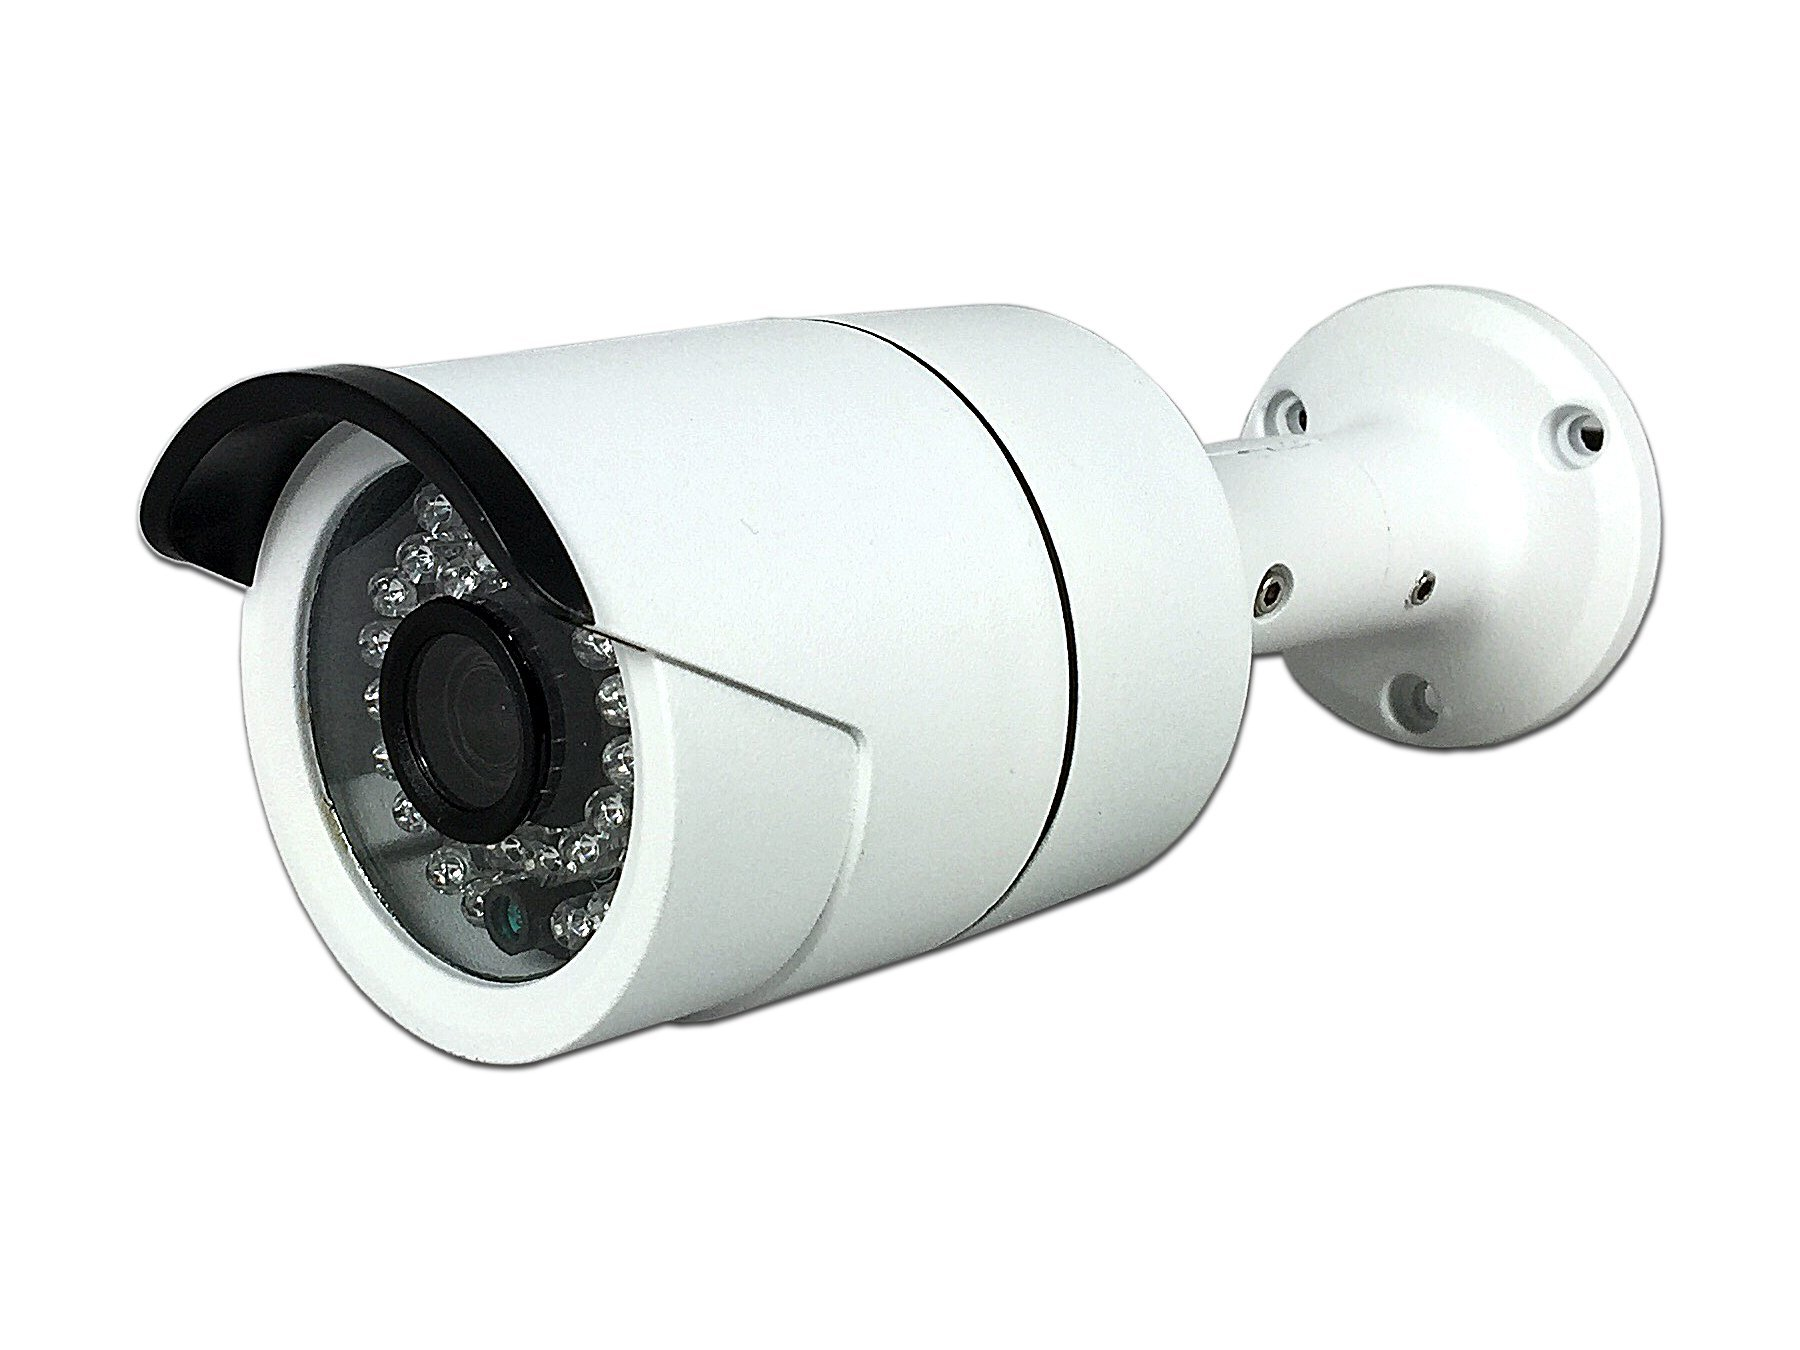 Aposonic A-TV2BF1 HD-TVI 1080P Sony Sensor 3.6mm 36 IR LEDs Weather-Proof Surveillance Bullet Camera (White)